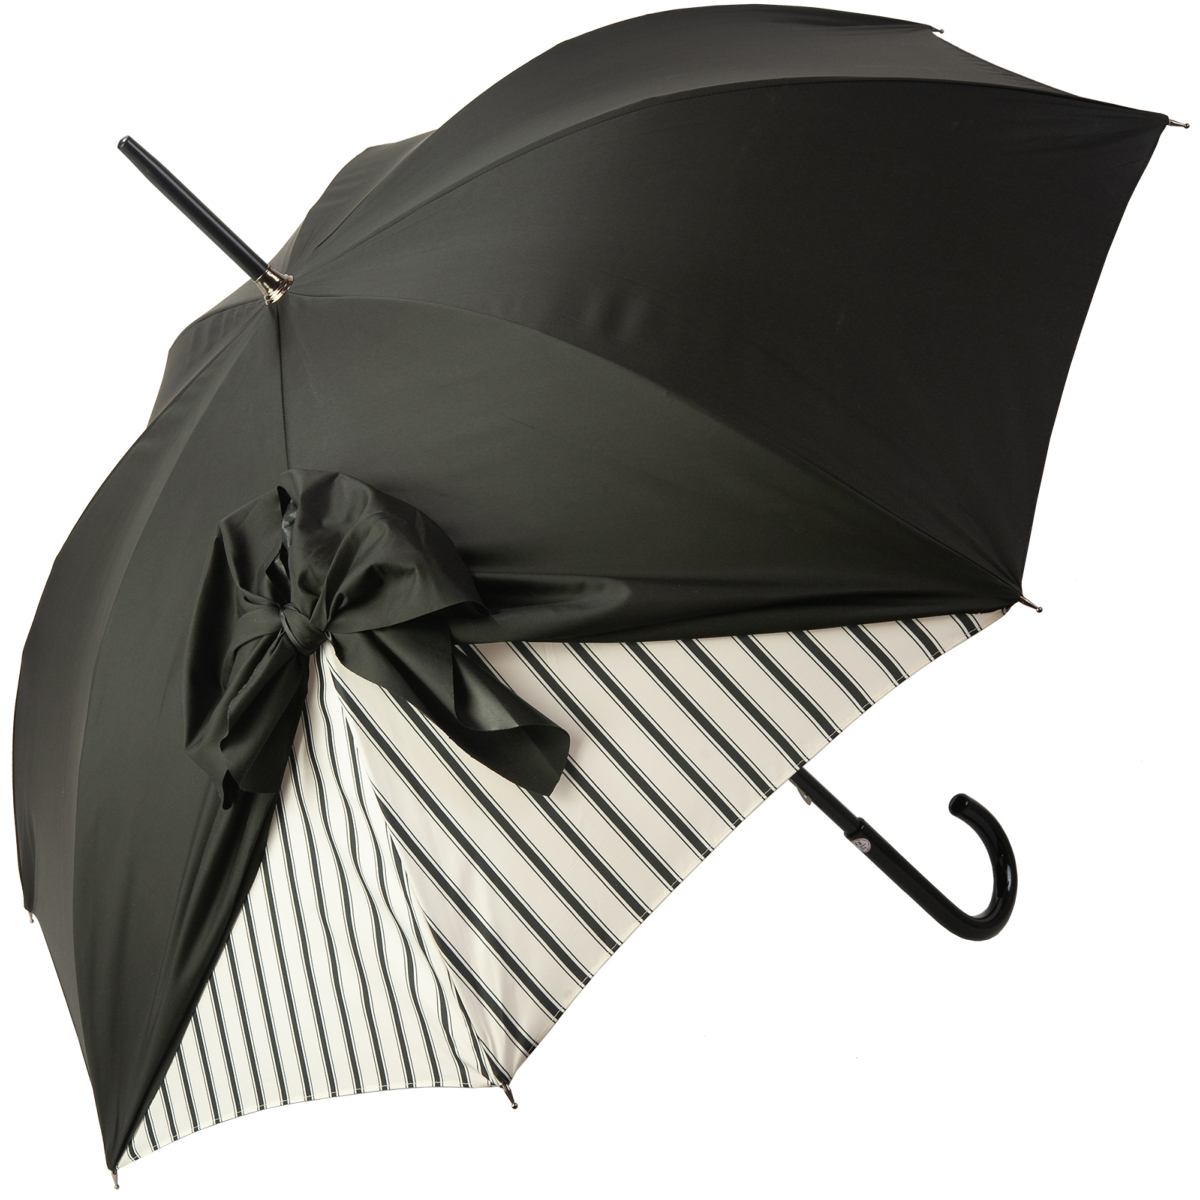 Best And Newest Drape Umbrellas Intended For Drape Bow Umbrella With Black Stripe On Creamchantal Thomass (View 4 of 20)